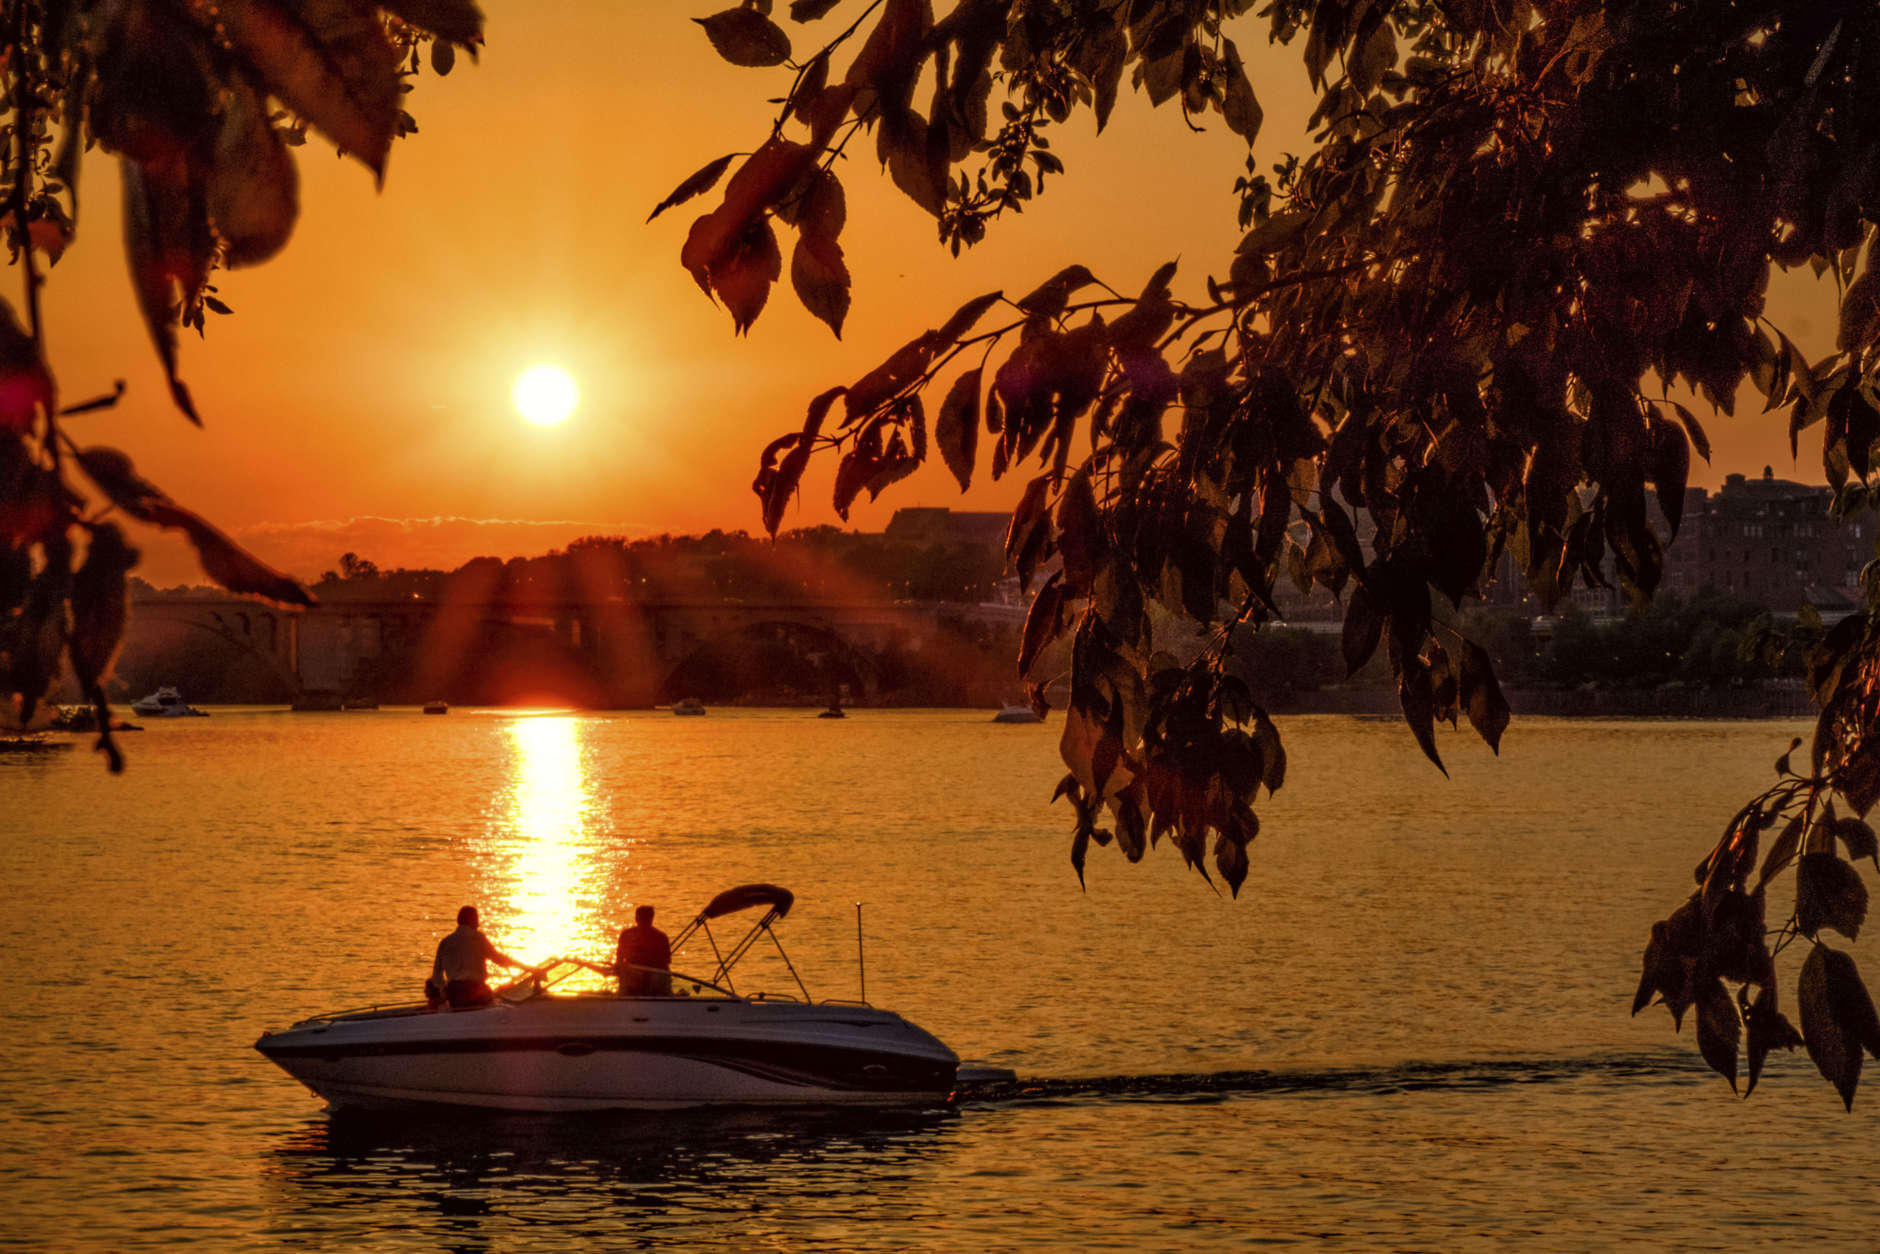 Recreational boaters watch the sunset on the Potomac River near the Francis Scott Key Bridge in Washington, Sunday, June 11, 2017. Temperatures in the nation's capital reached the mid-90s Sunday. (AP Photo/J. David Ake)